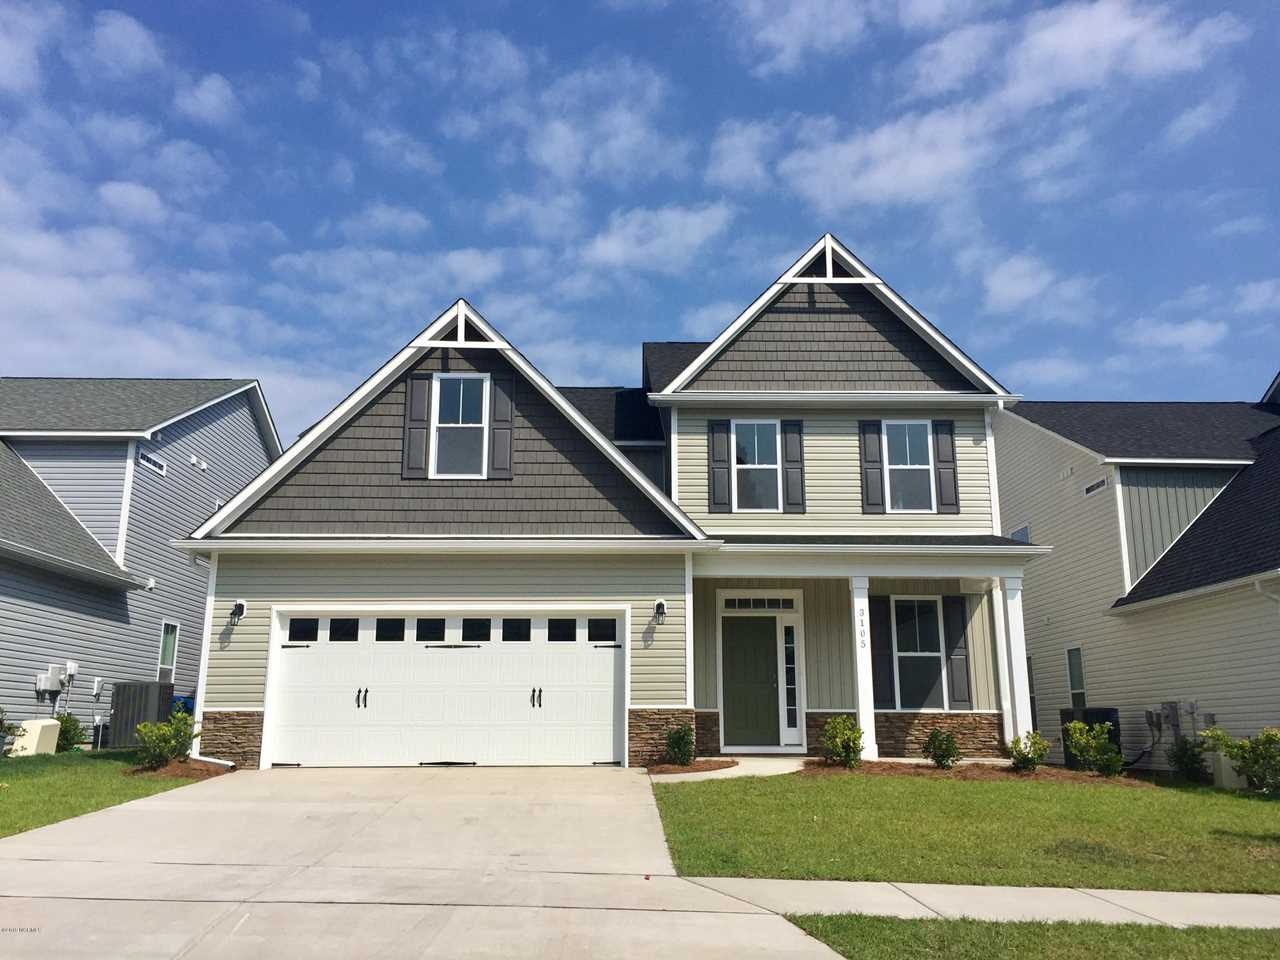 Home For Sale At 3105 S Rocklund Court, Wilmington NC in The Creek At Willowick Photo 1